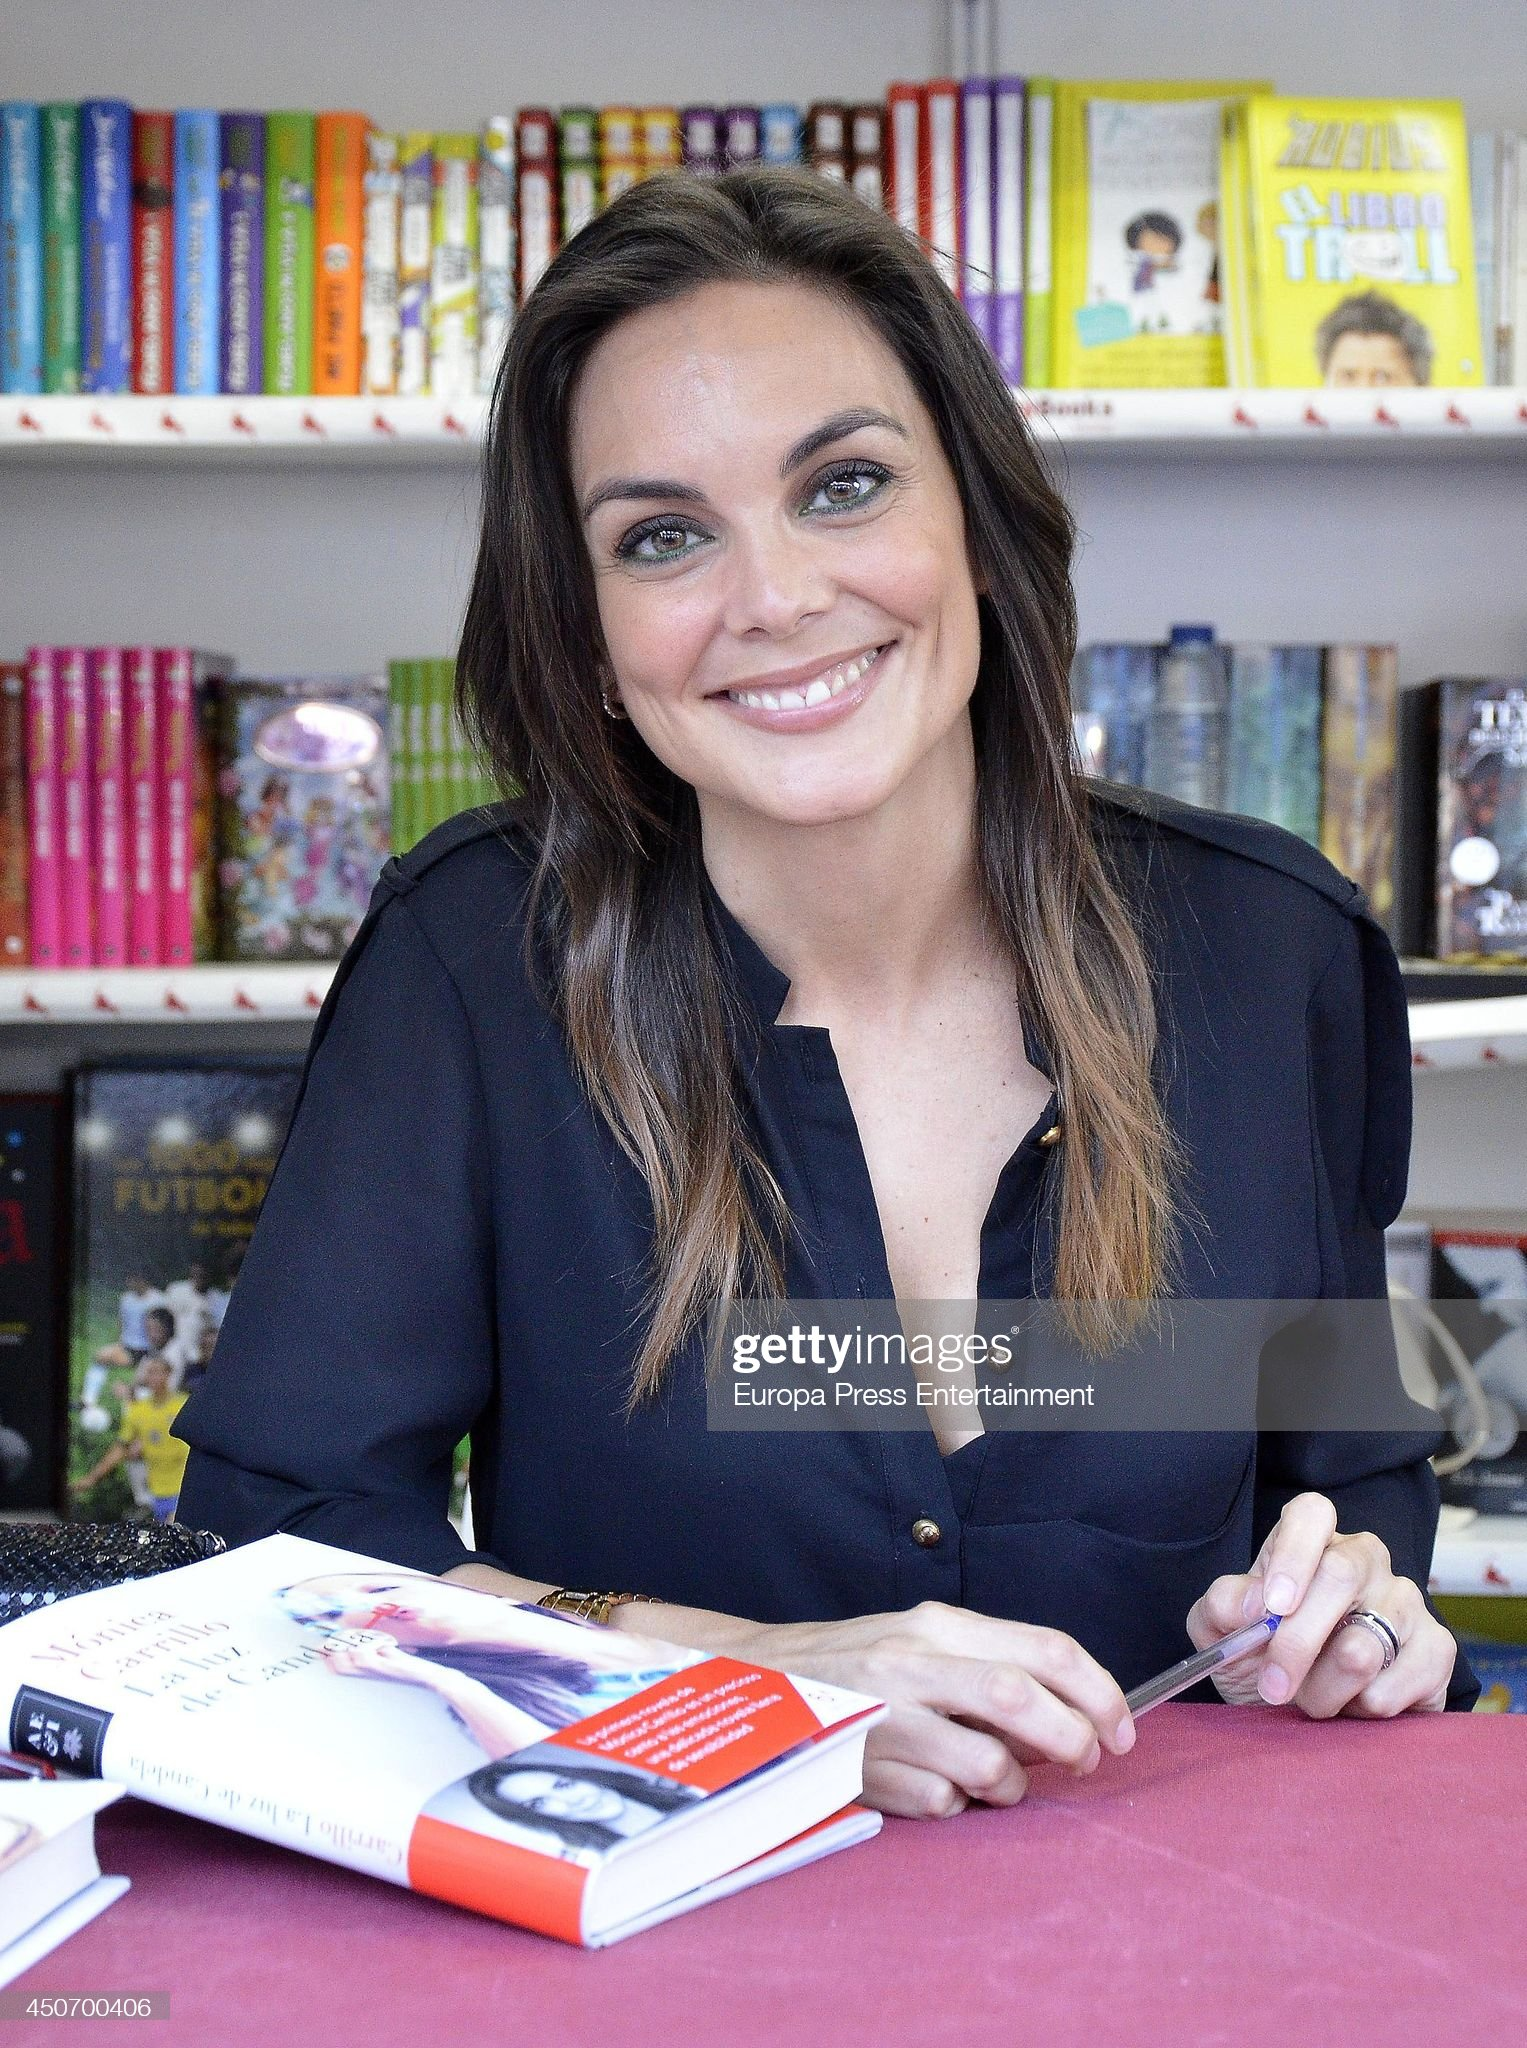 Hazel eyes - Personas famosas con los ojos de color AVELLANA Monica-carrillo-signs-copies-of-books-at-madrid-book-fair-on-june-15-picture-id450700406?s=2048x2048